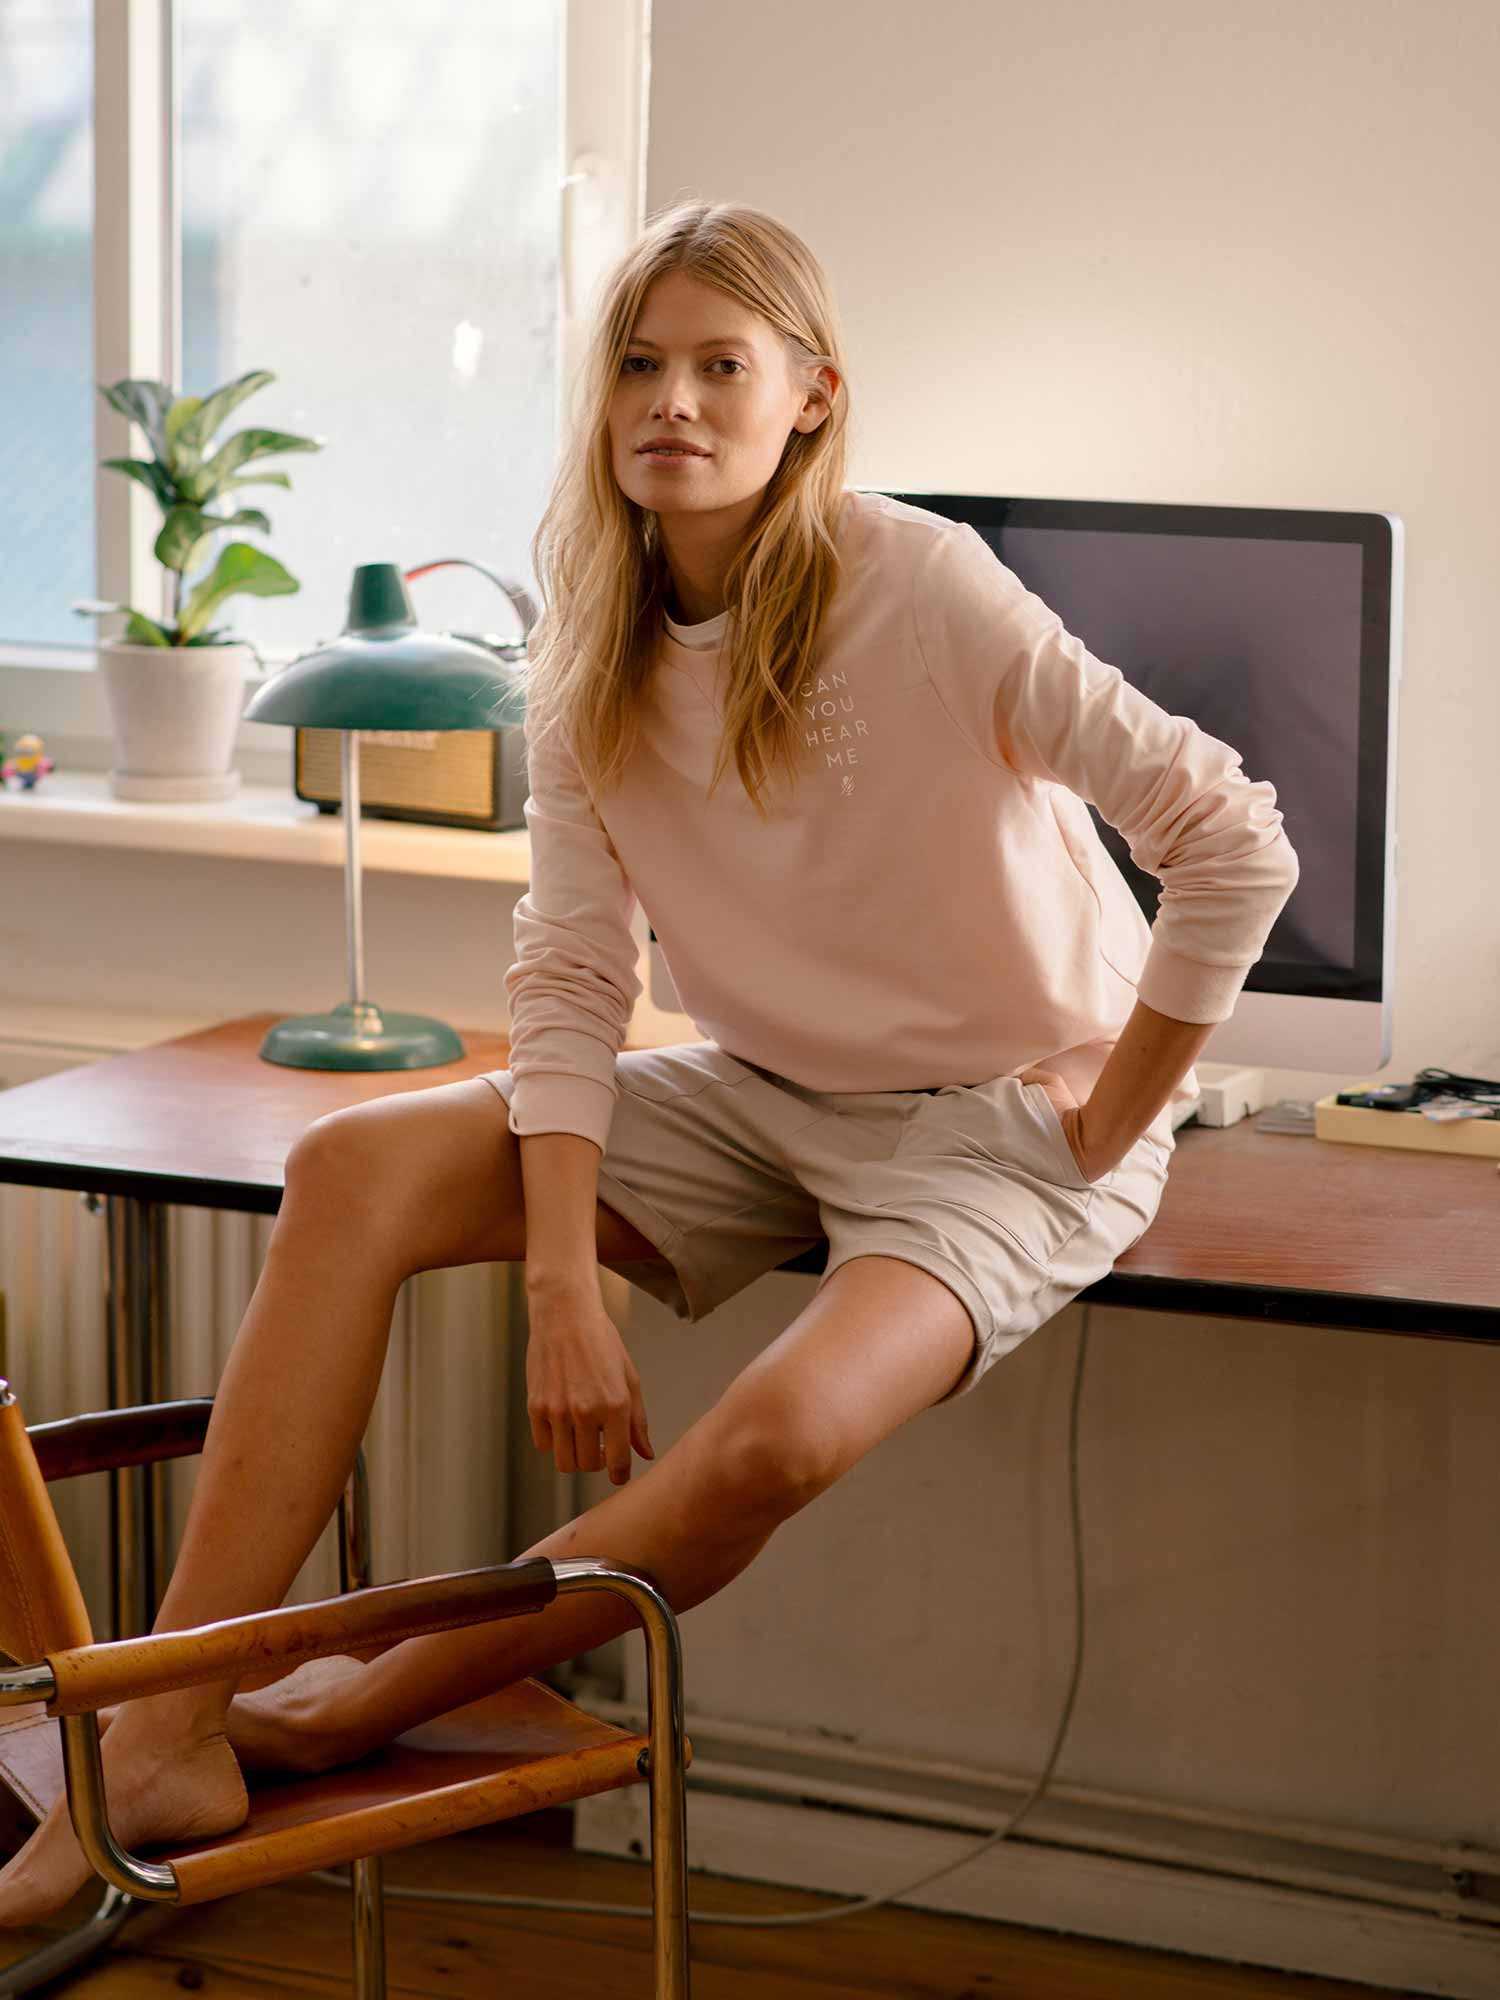 Home office outfit of jumper and long trousers in light pink for her from mey